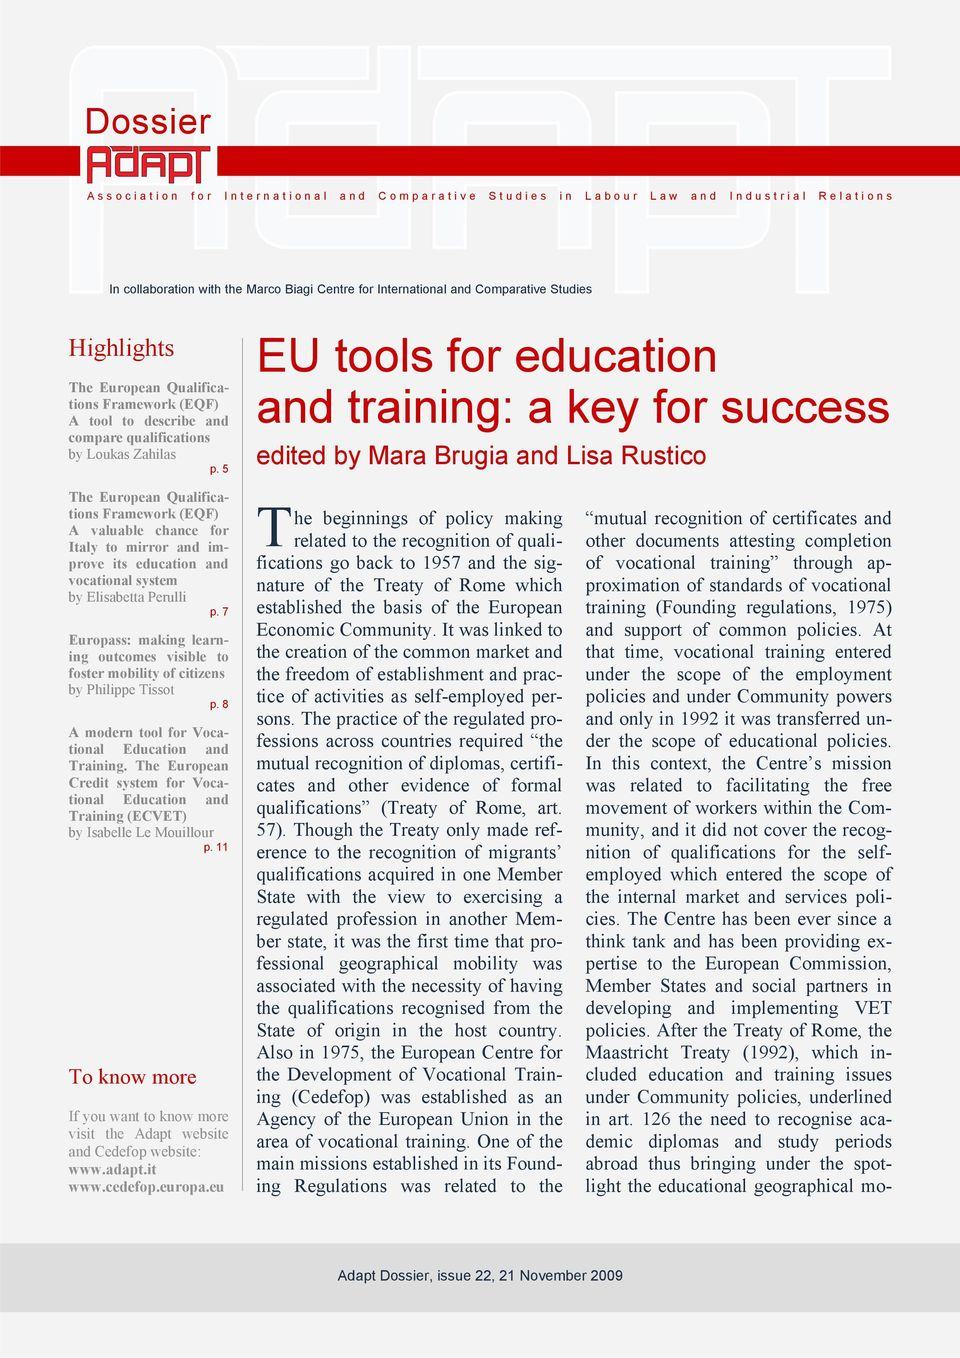 5 EU tools for education and training: a key for success edited by Mara Brugia and Lisa Rustico The European Qualifications Framework (EQF) A valuable chance for Italy to mirror and improve its